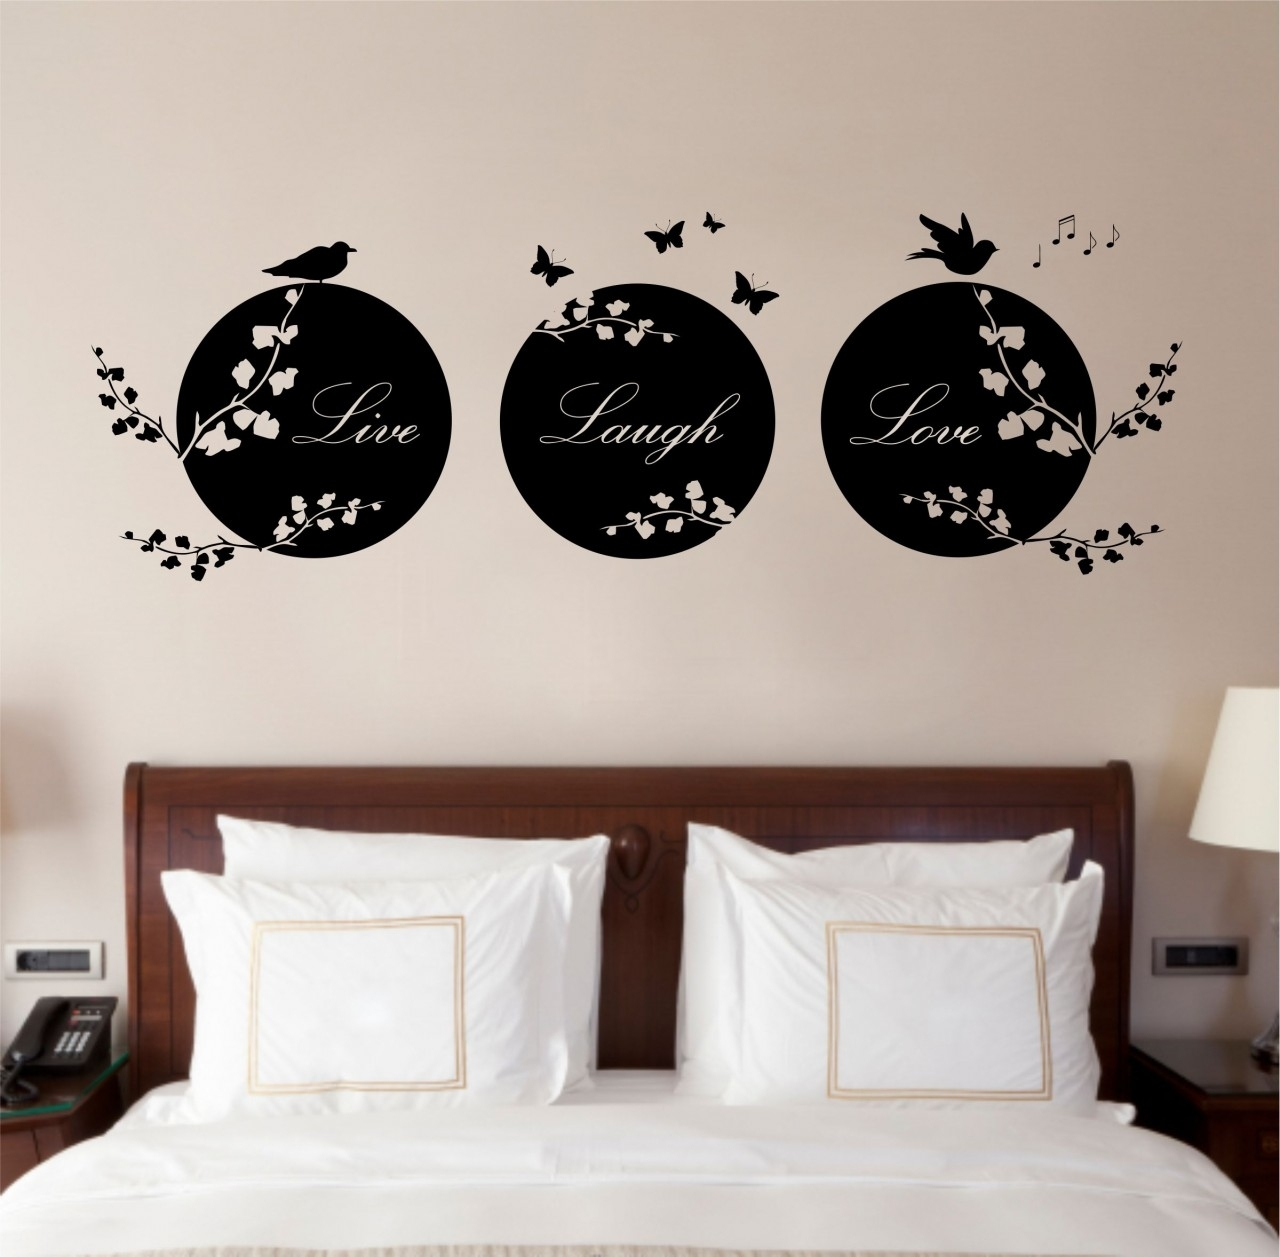 Vinyl Wall Art: Makeover For Your Homes – Pickndecor Intended For Current Vinyl Wall Art (Gallery 2 of 15)